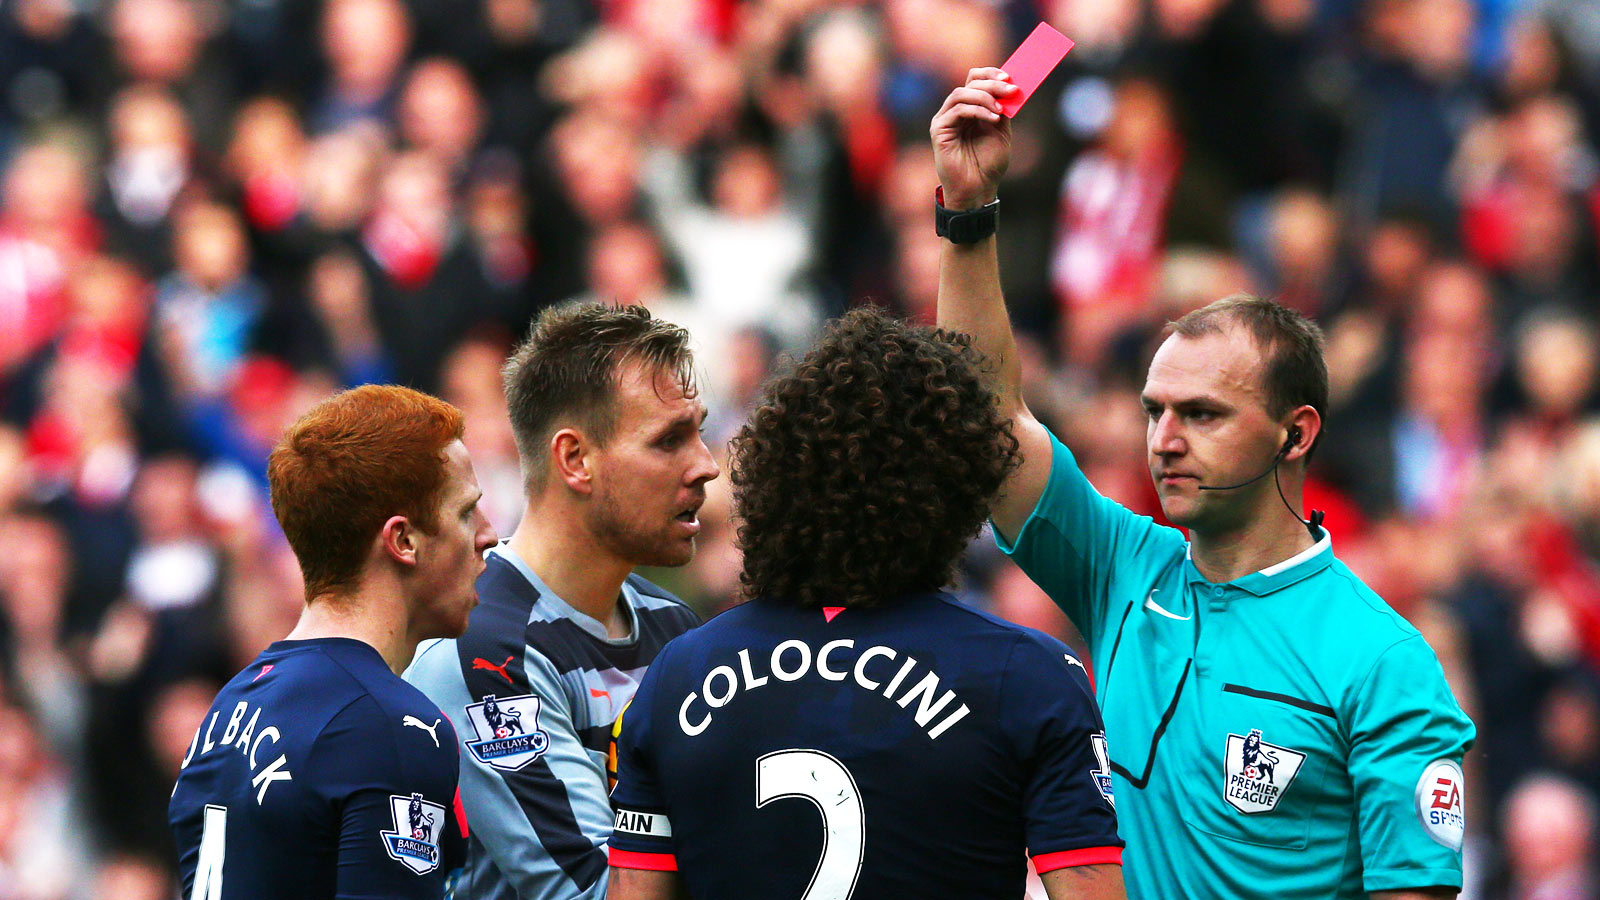 Newcastle appeal Coloccini red card against Sunderland